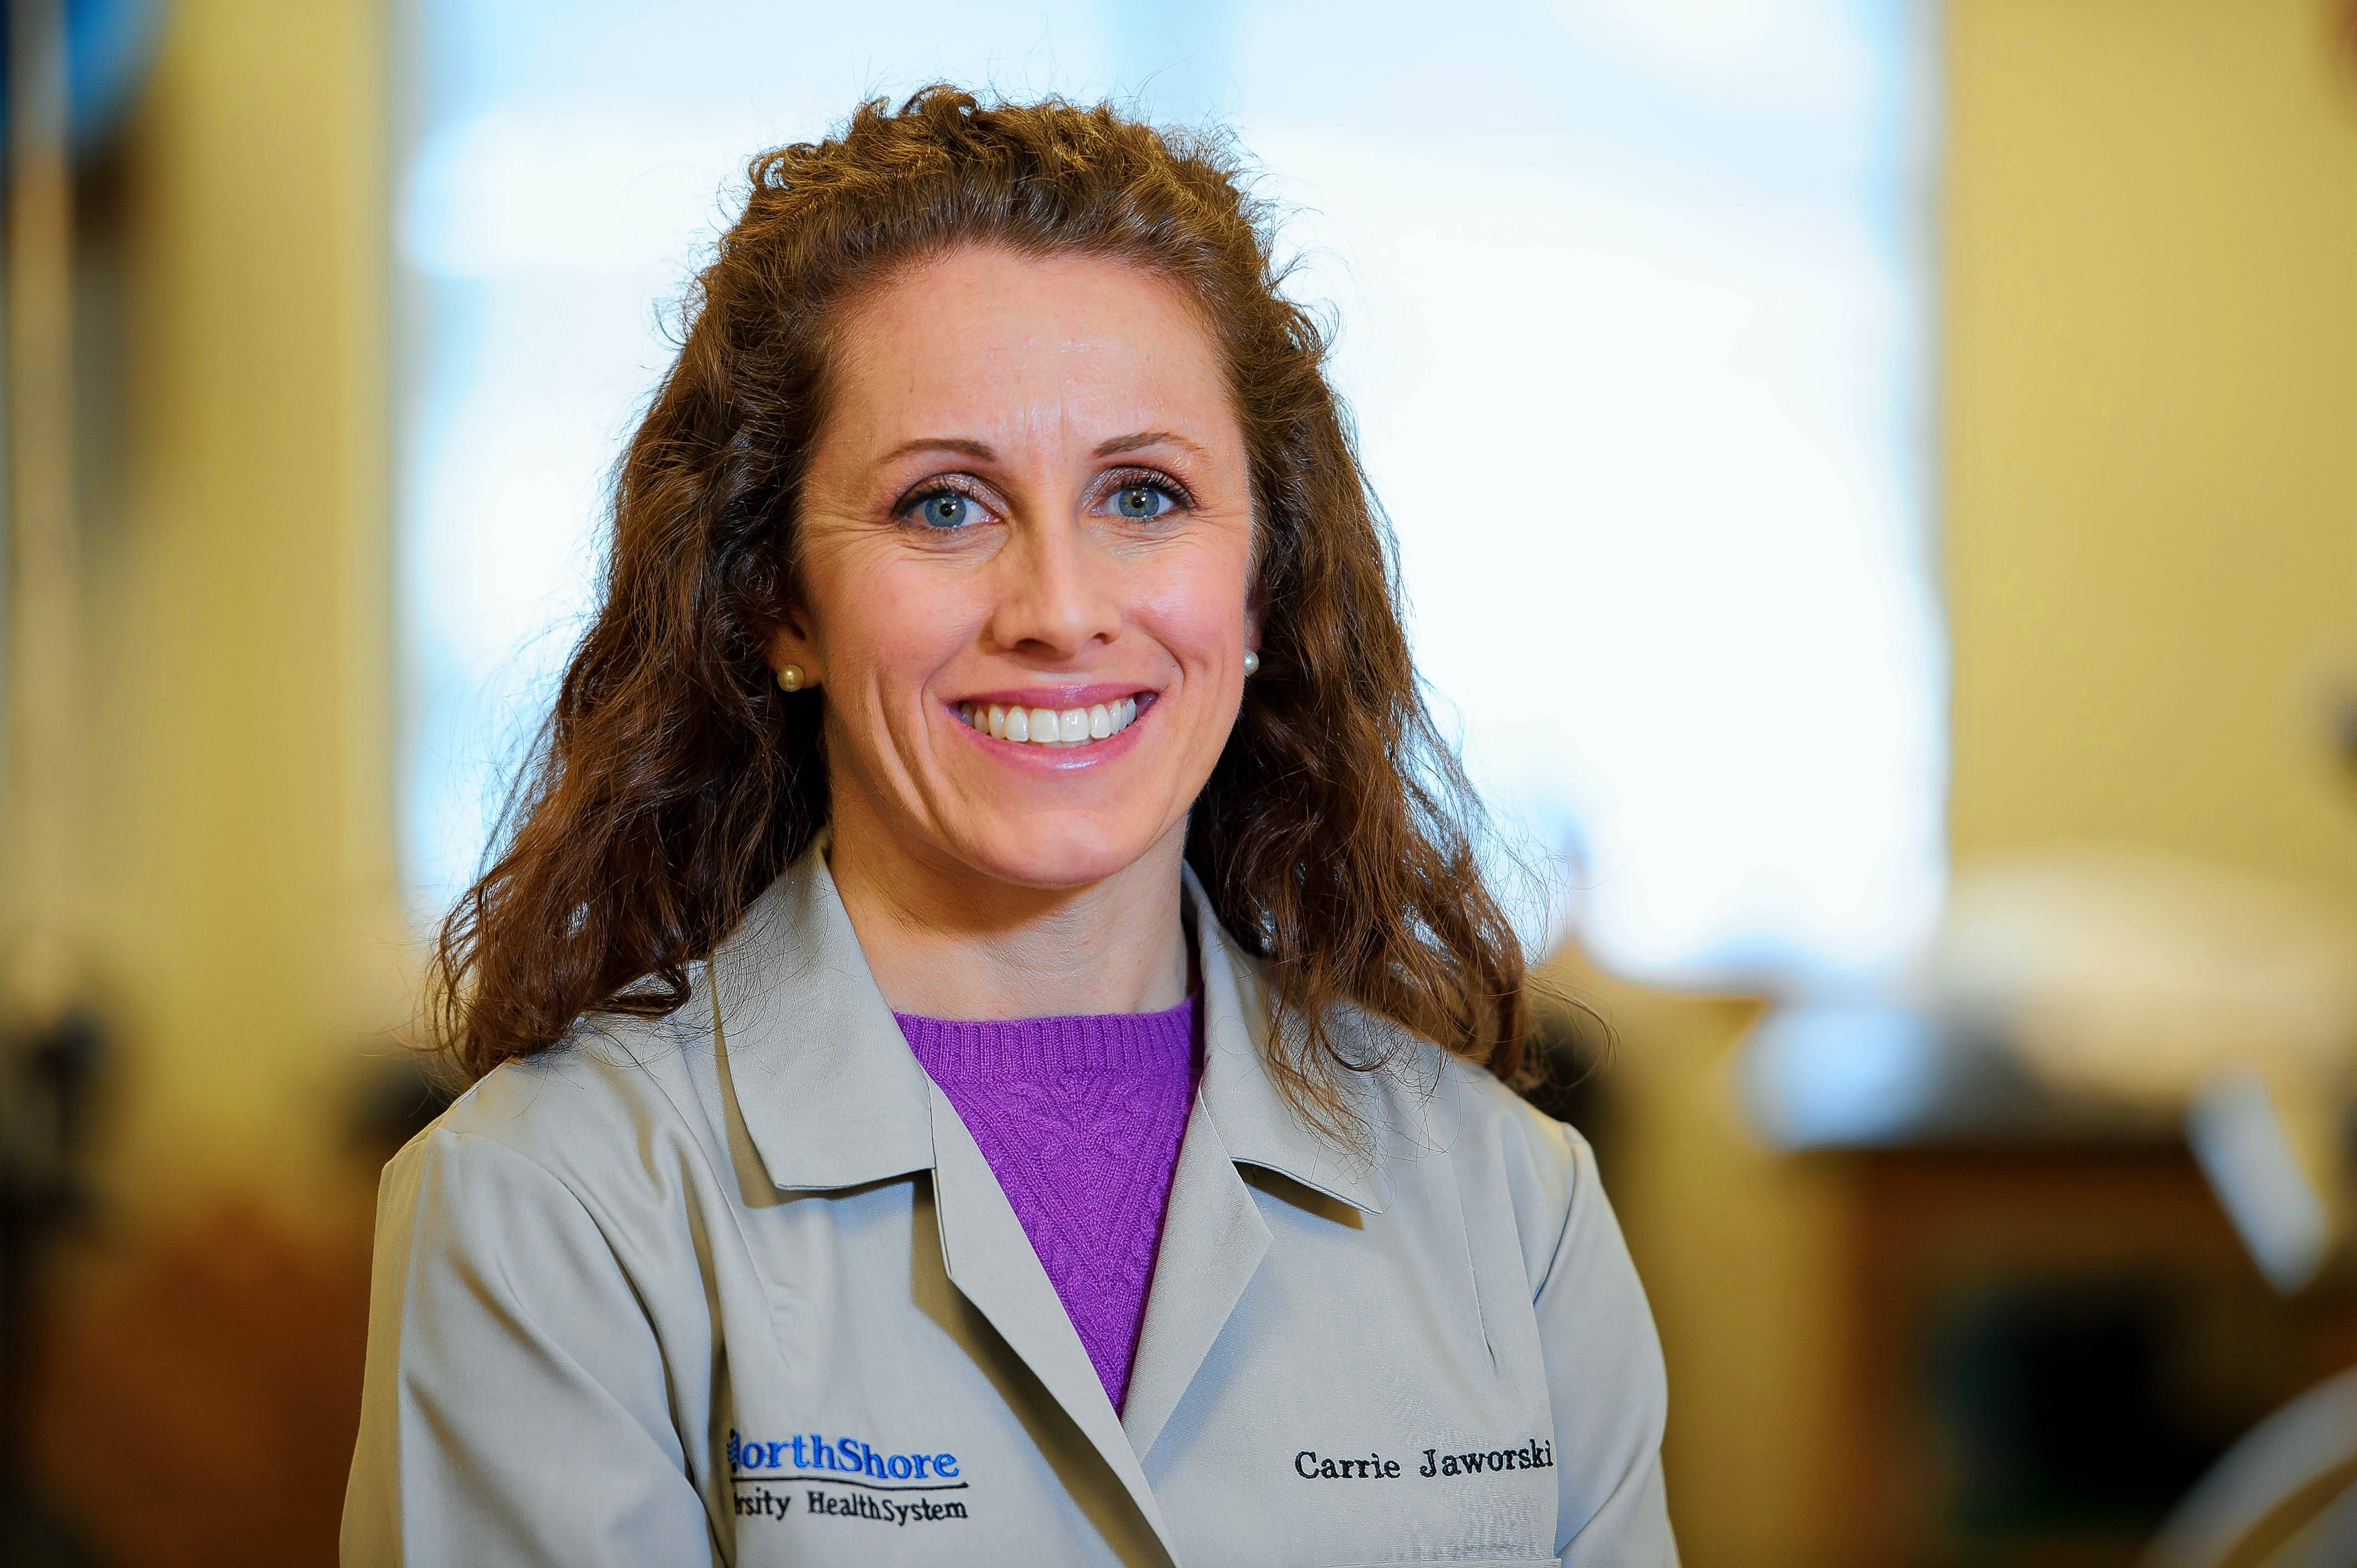 Dr. Carrie Jaworski